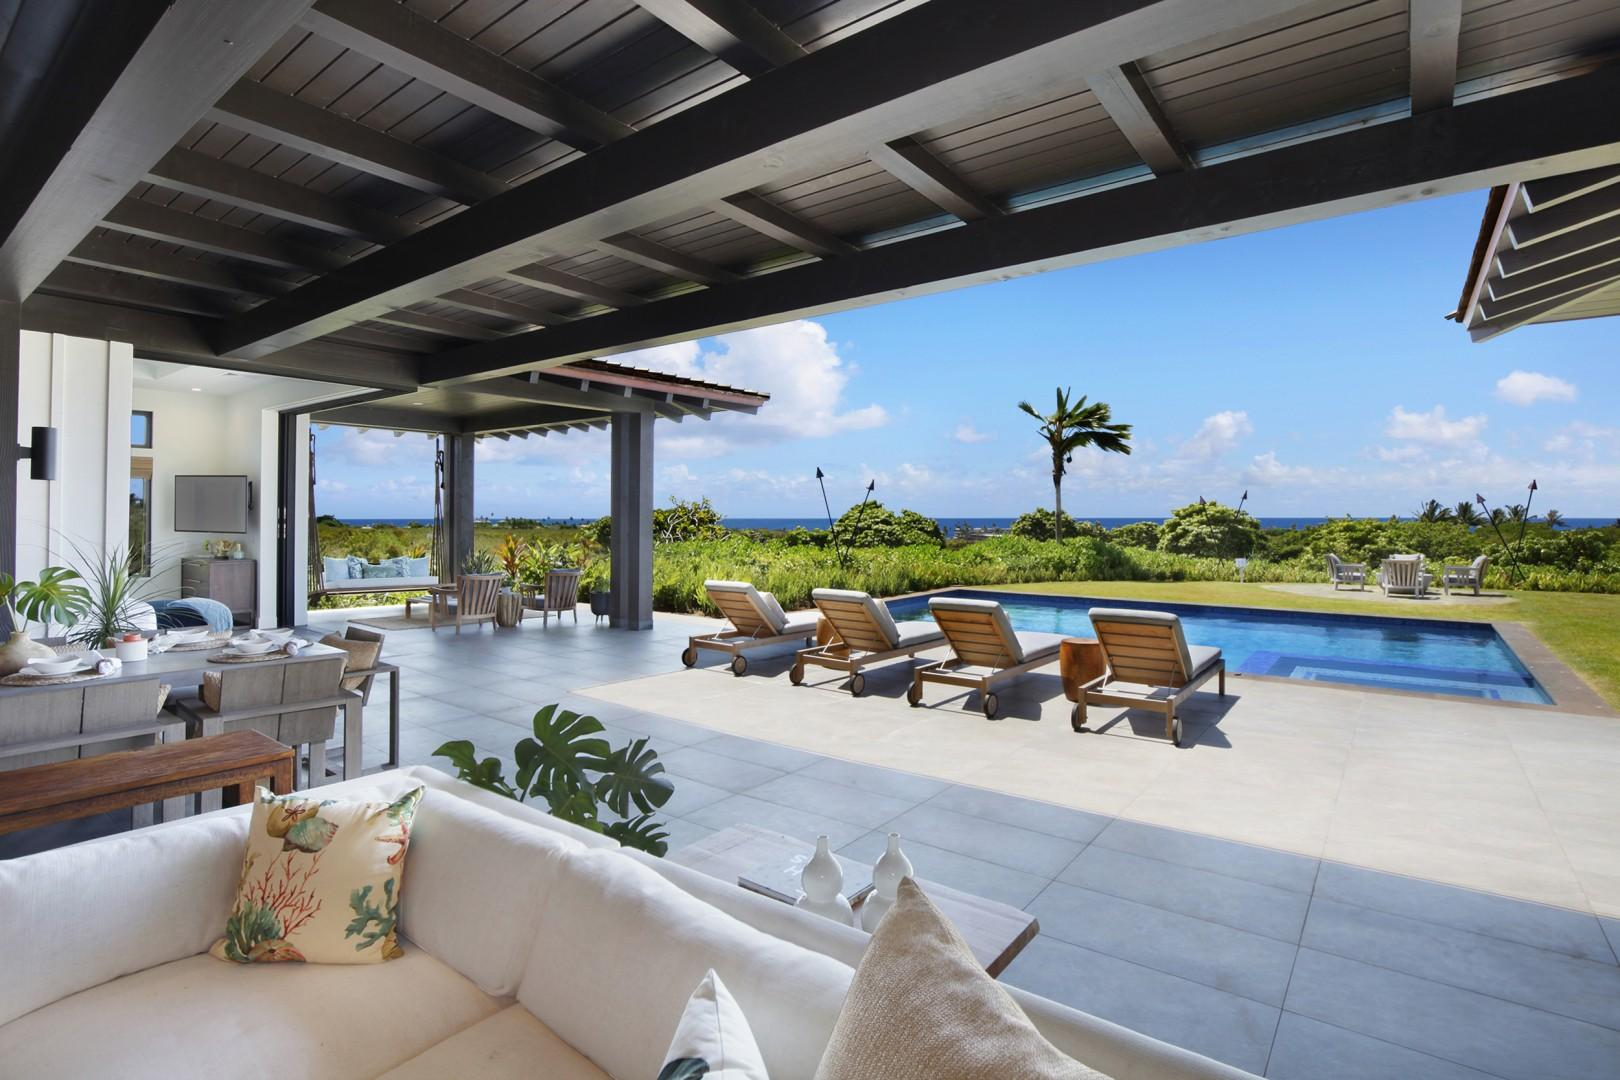 Outdoor living space and pool with ocean views